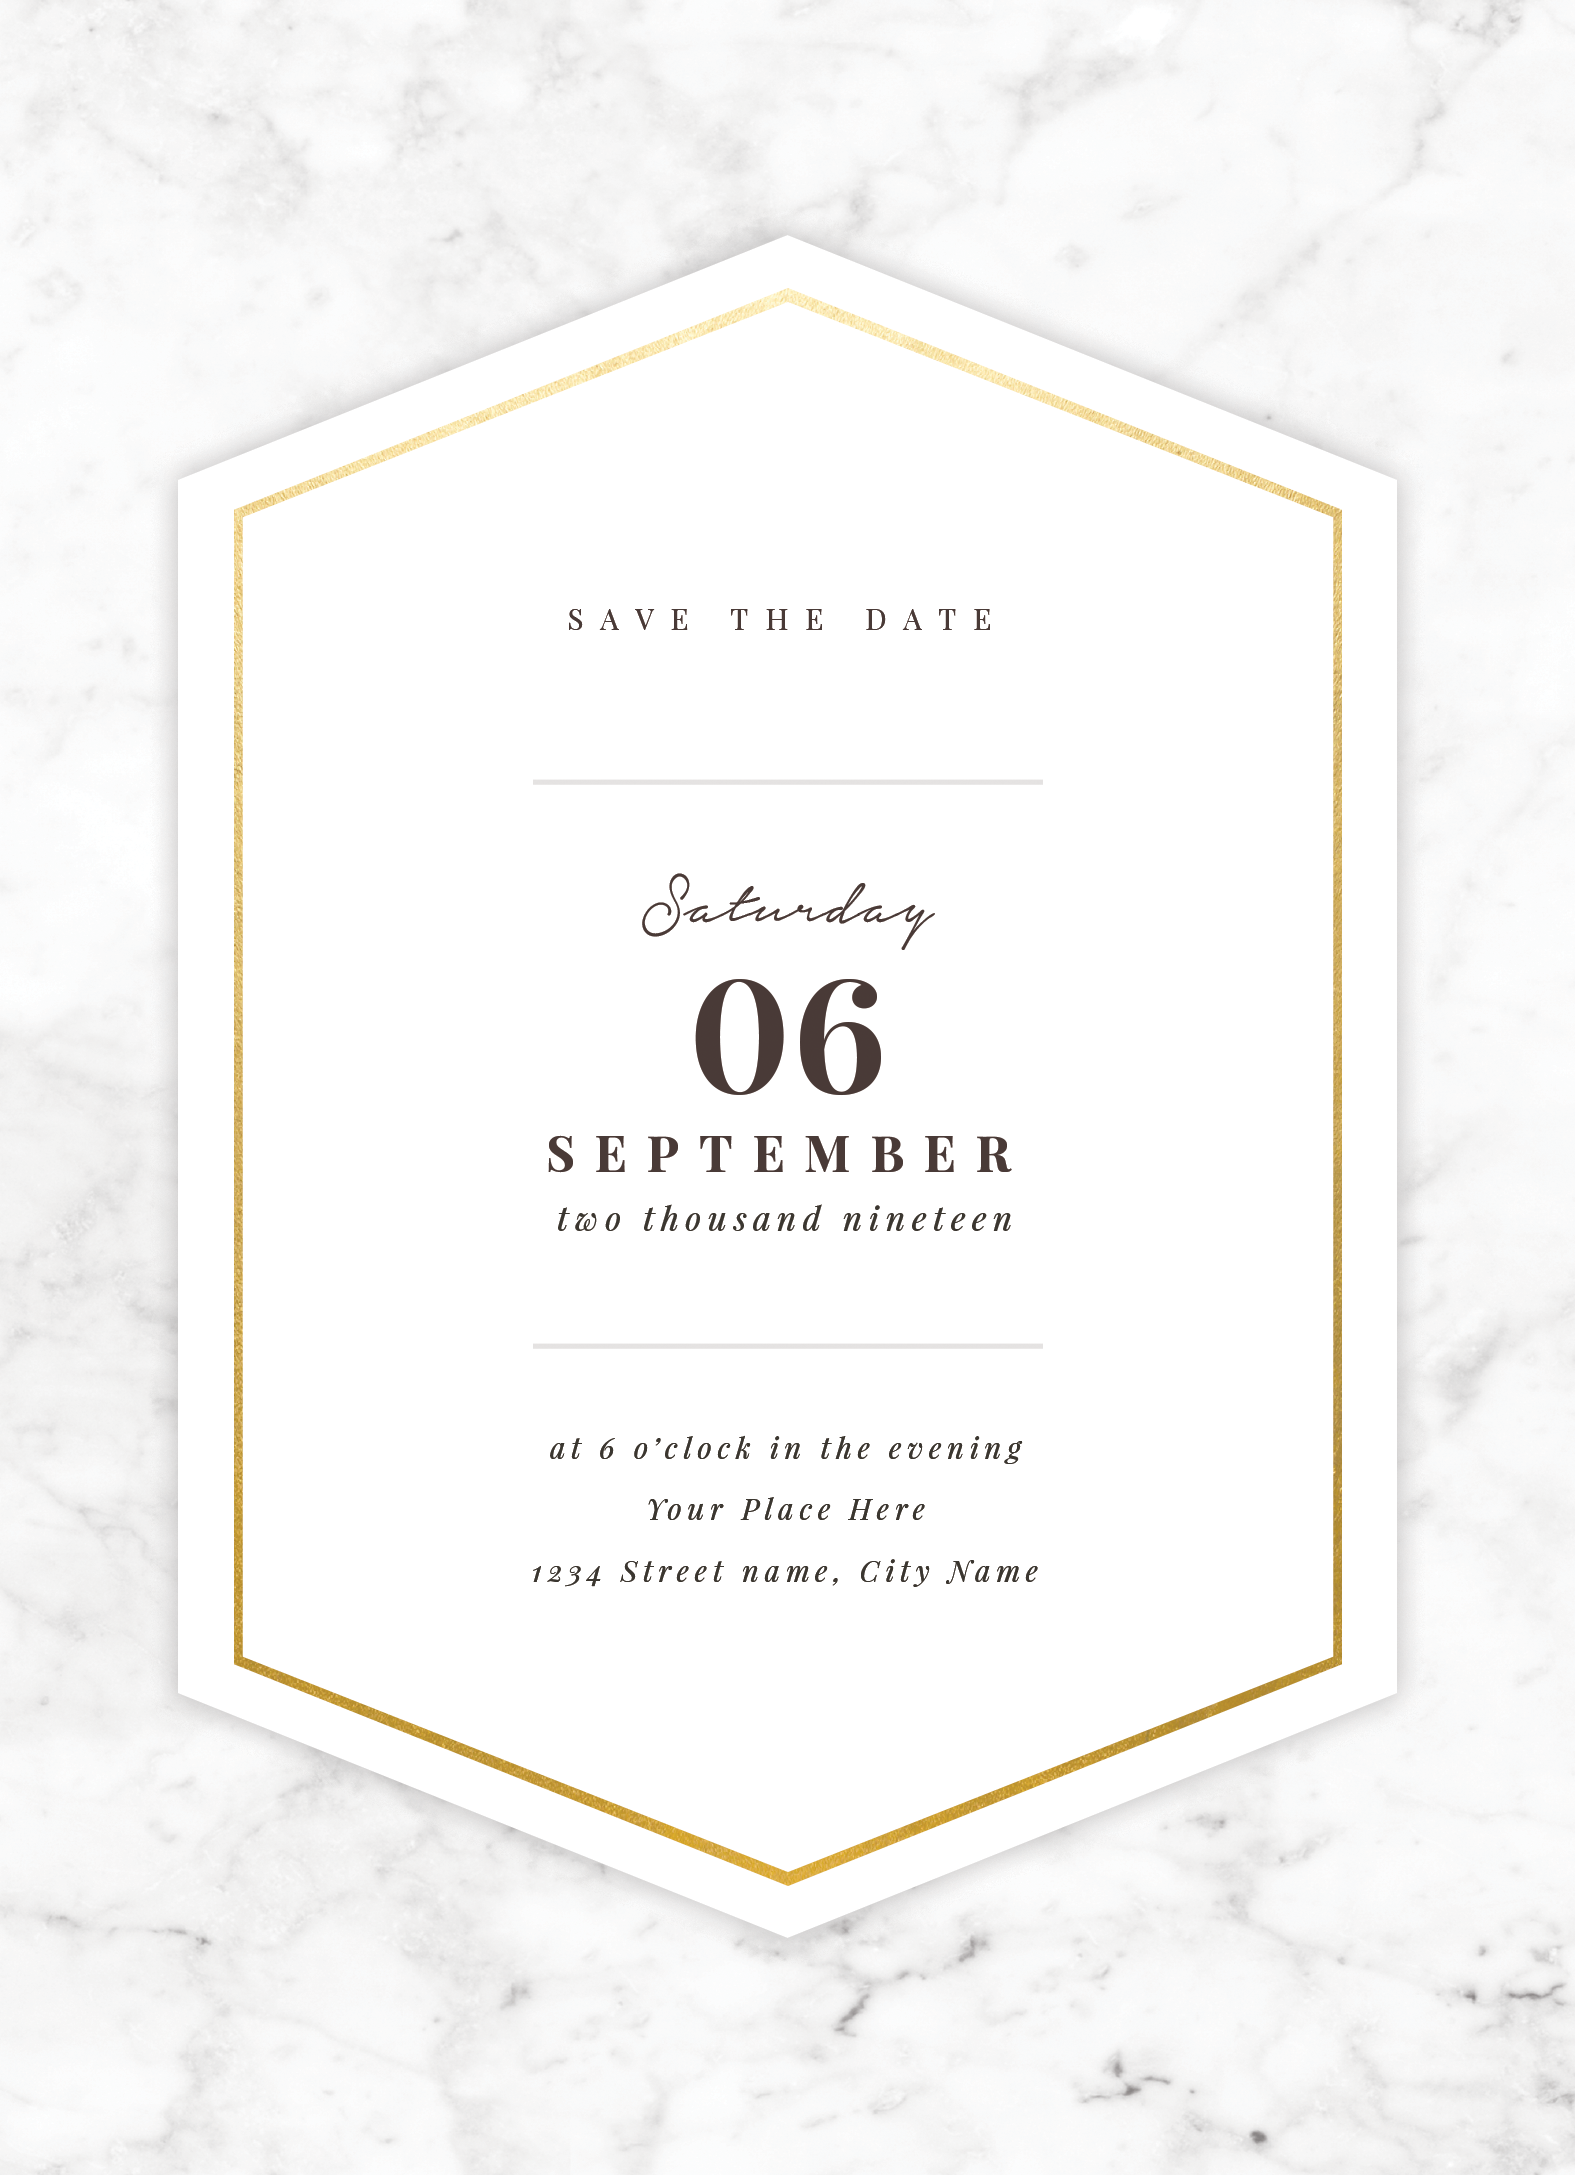 04_save the date card_RGB.png